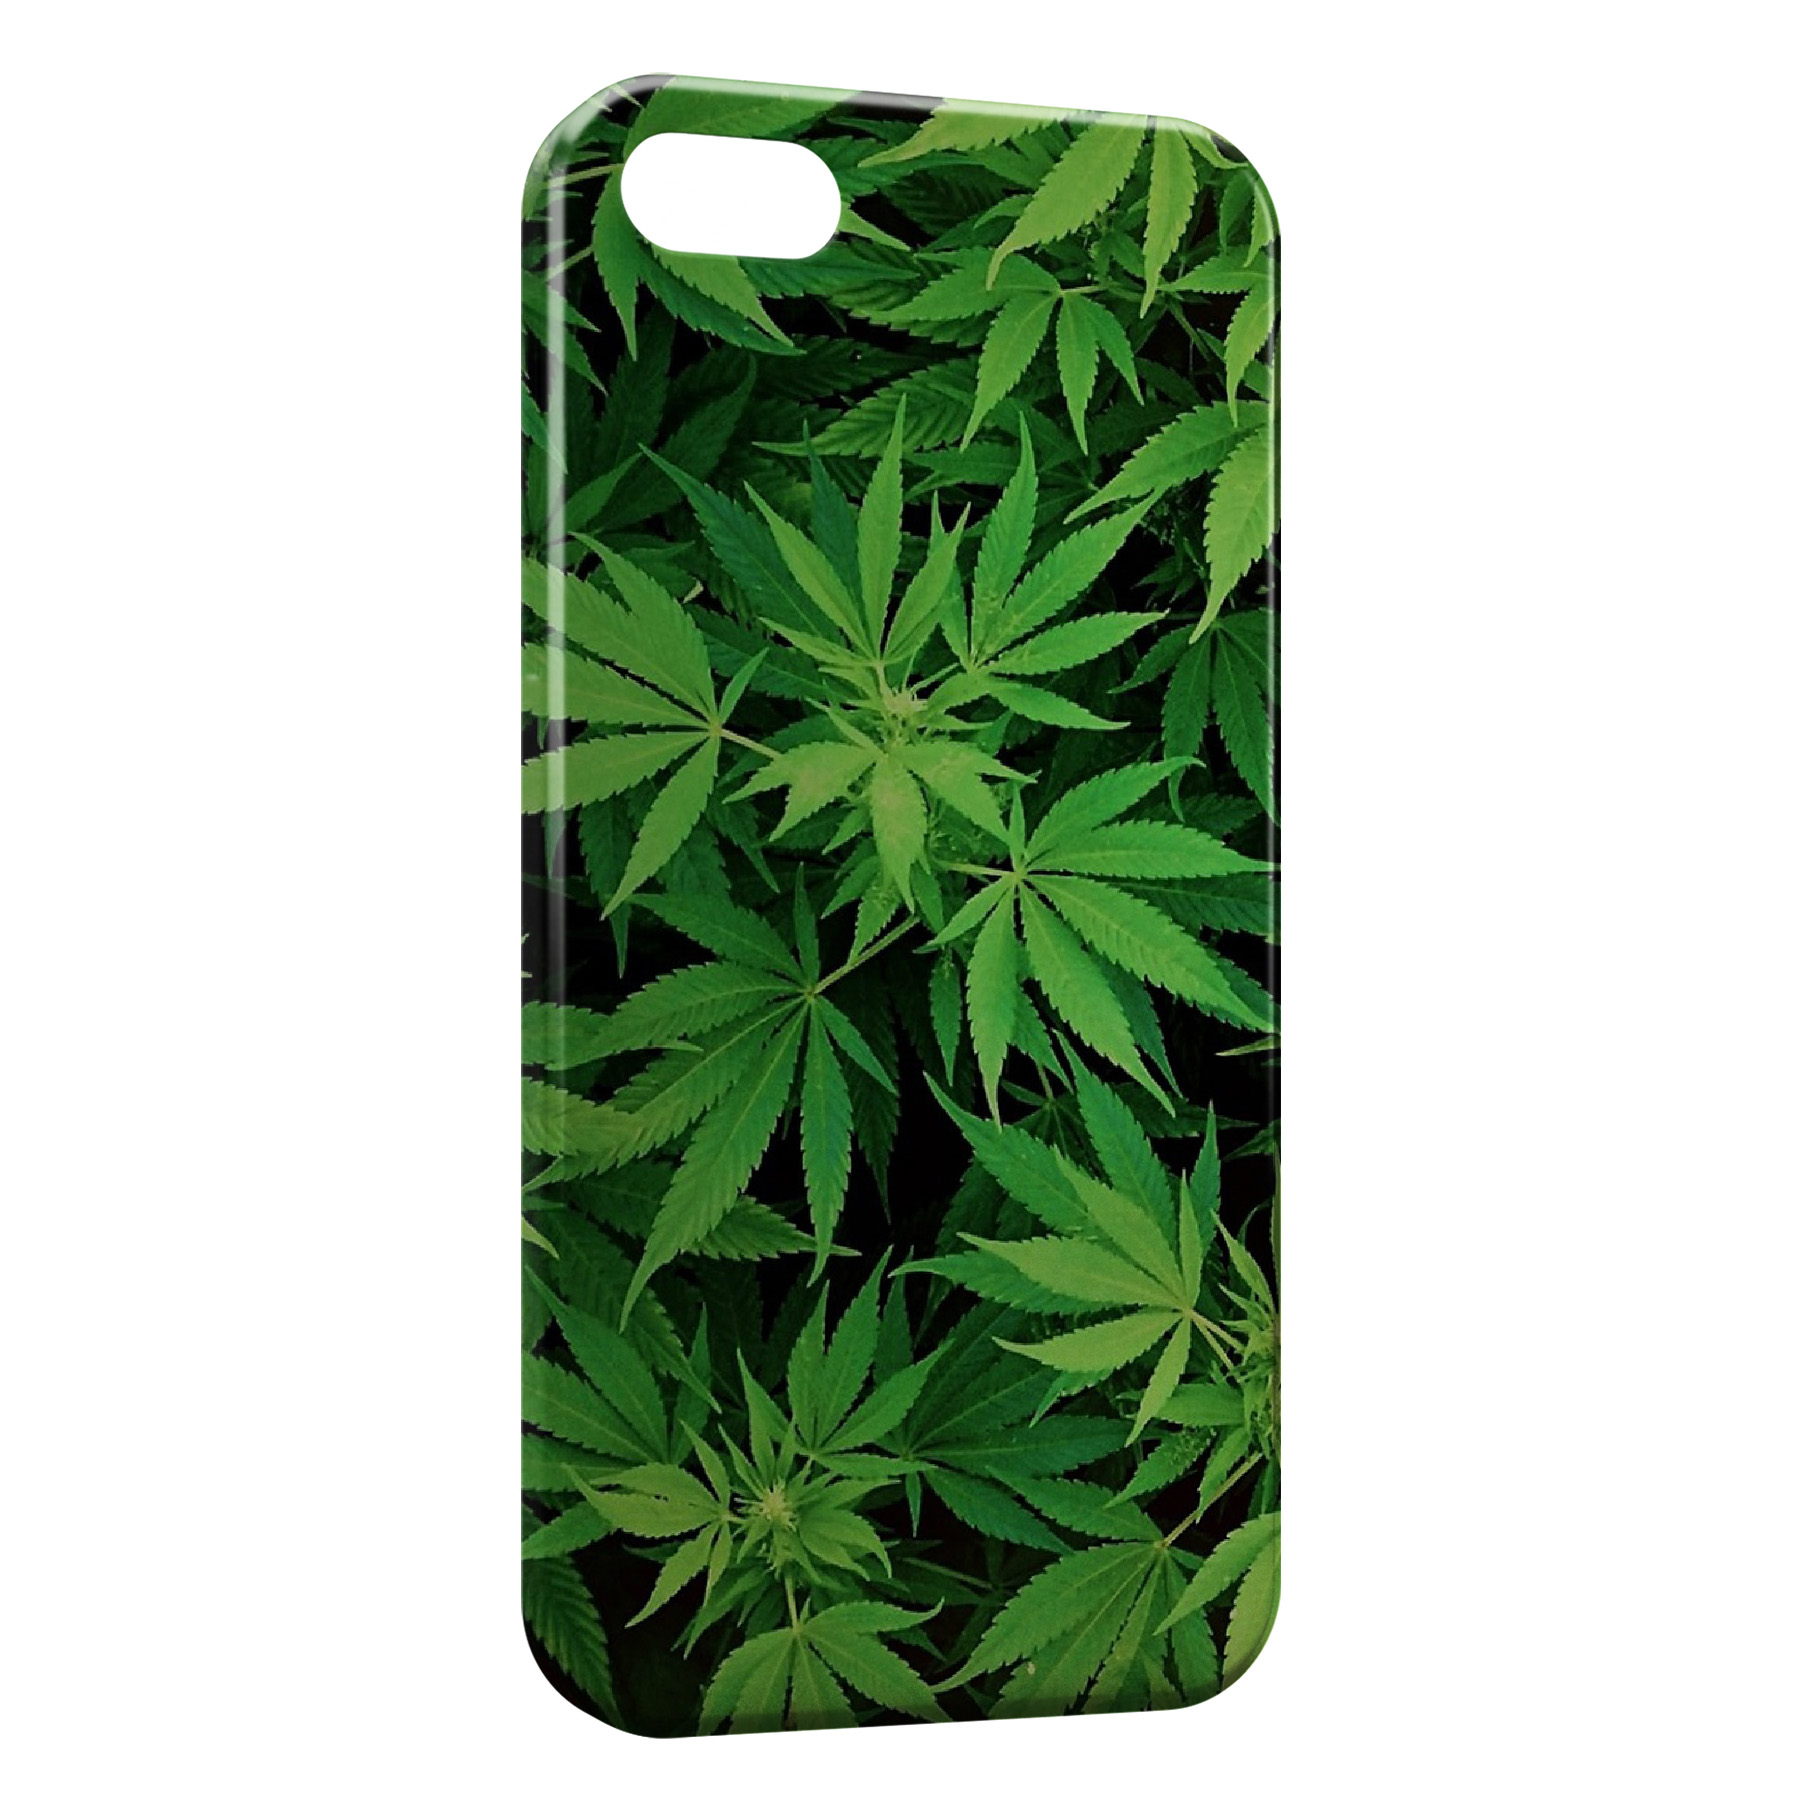 Coque iPhone 4 4S Cannabis Weed 3